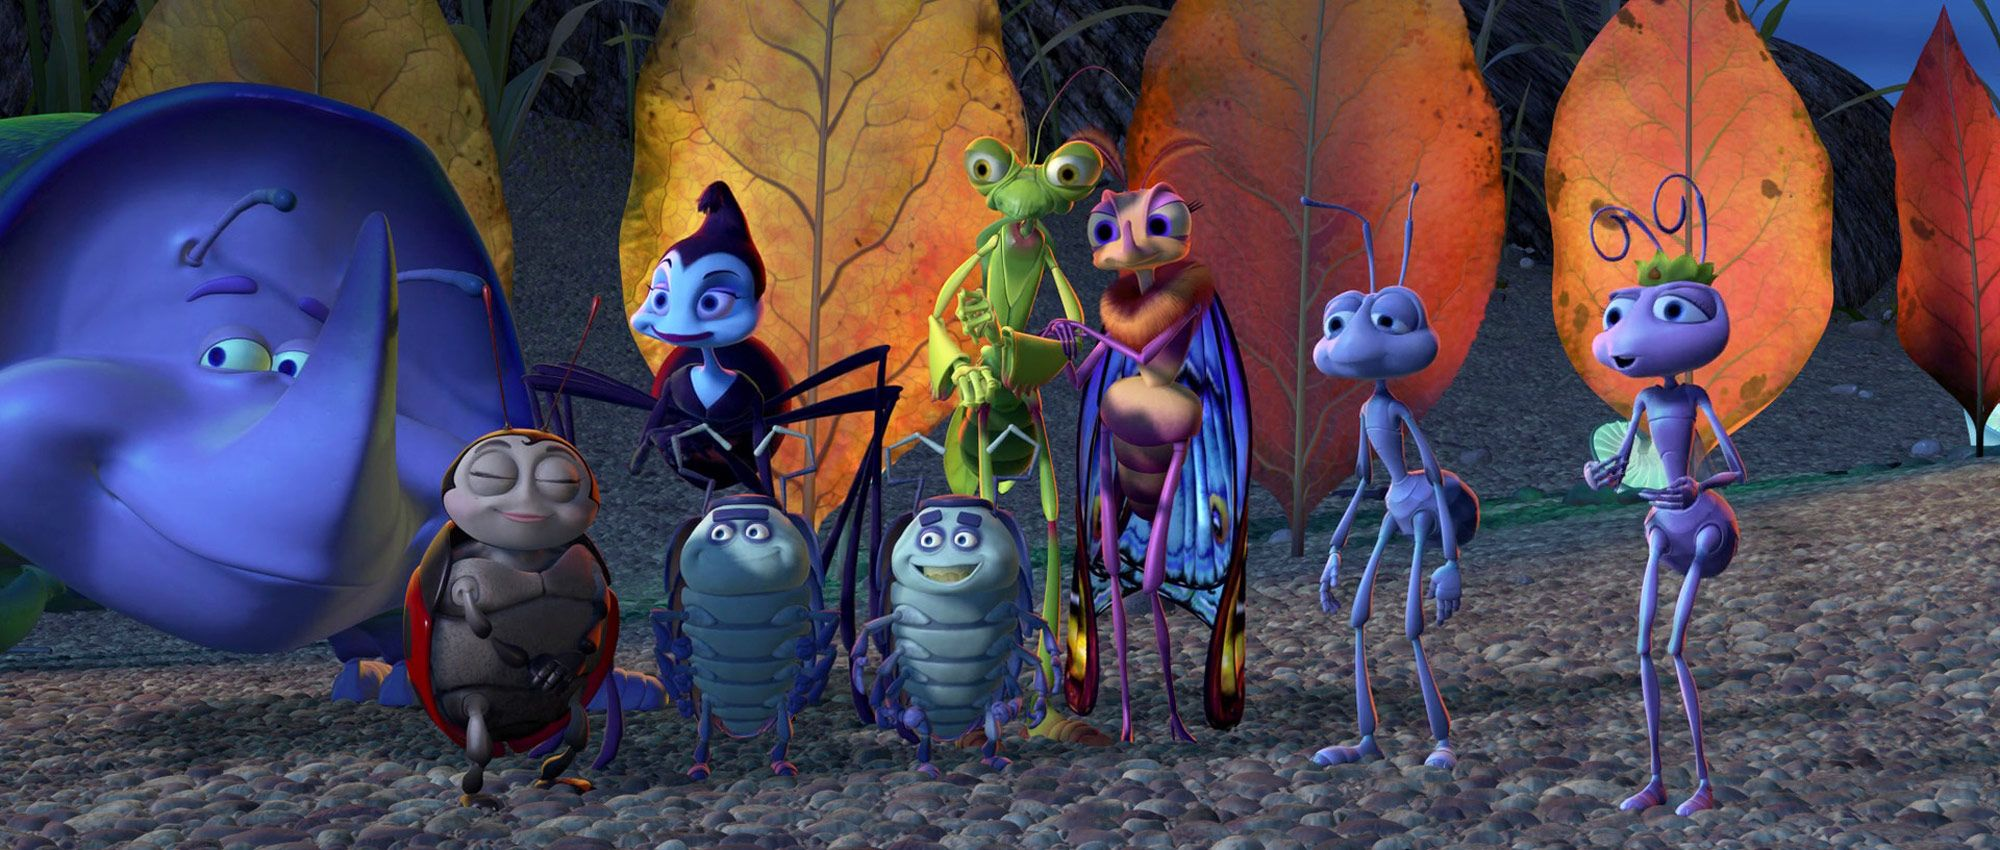 a bugs life characters